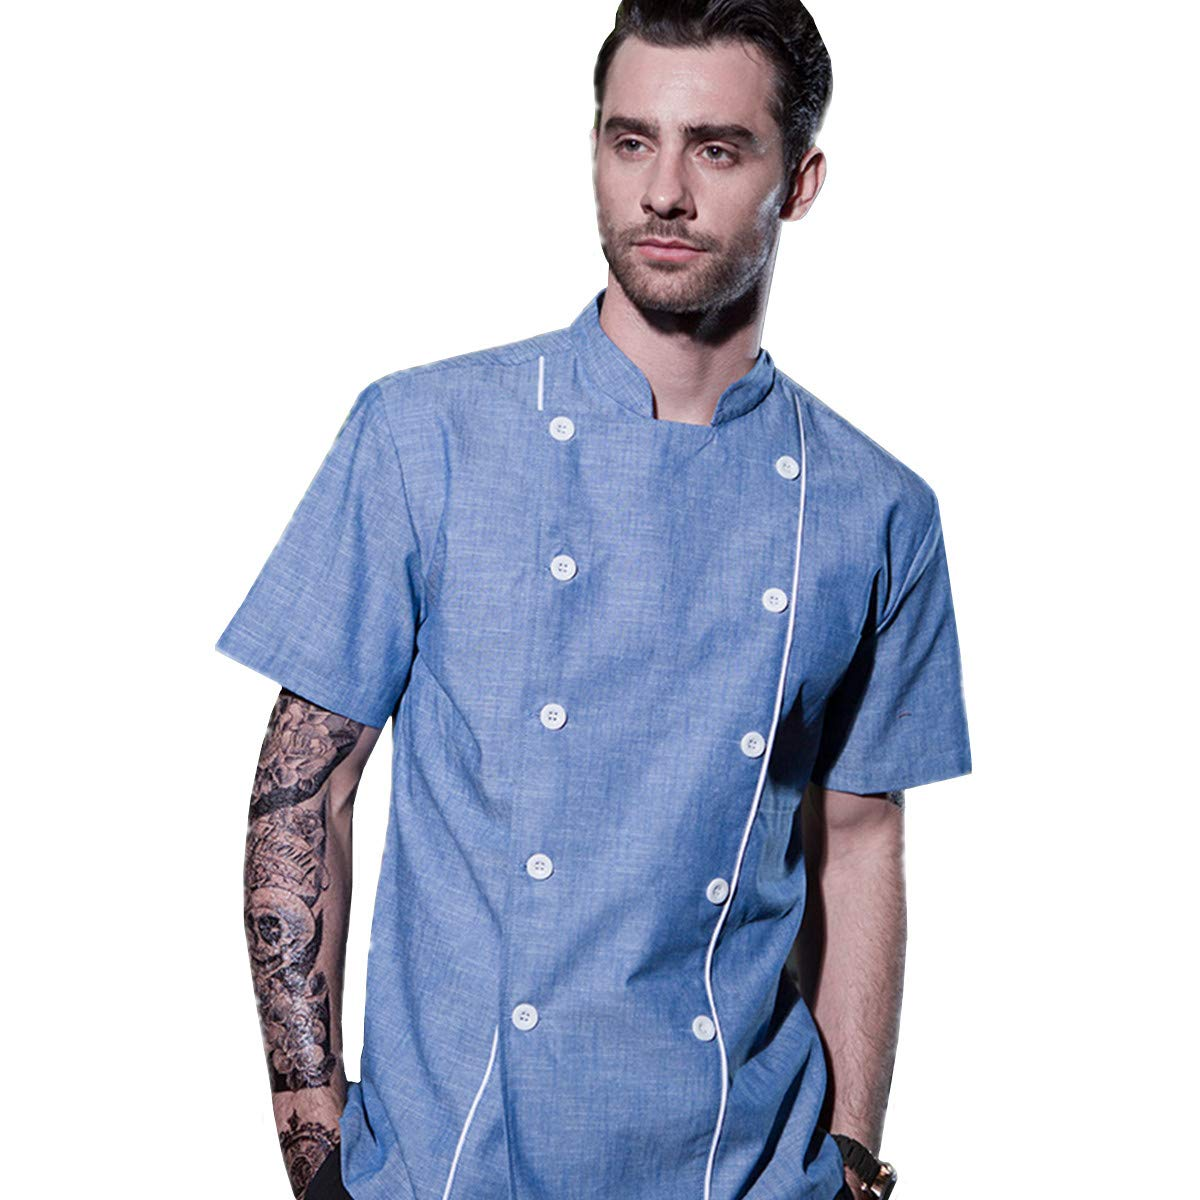 XINFU Chef-Coat Double-Breasted Short-Sleeved for Men's and Women's Summer Chef Jacket